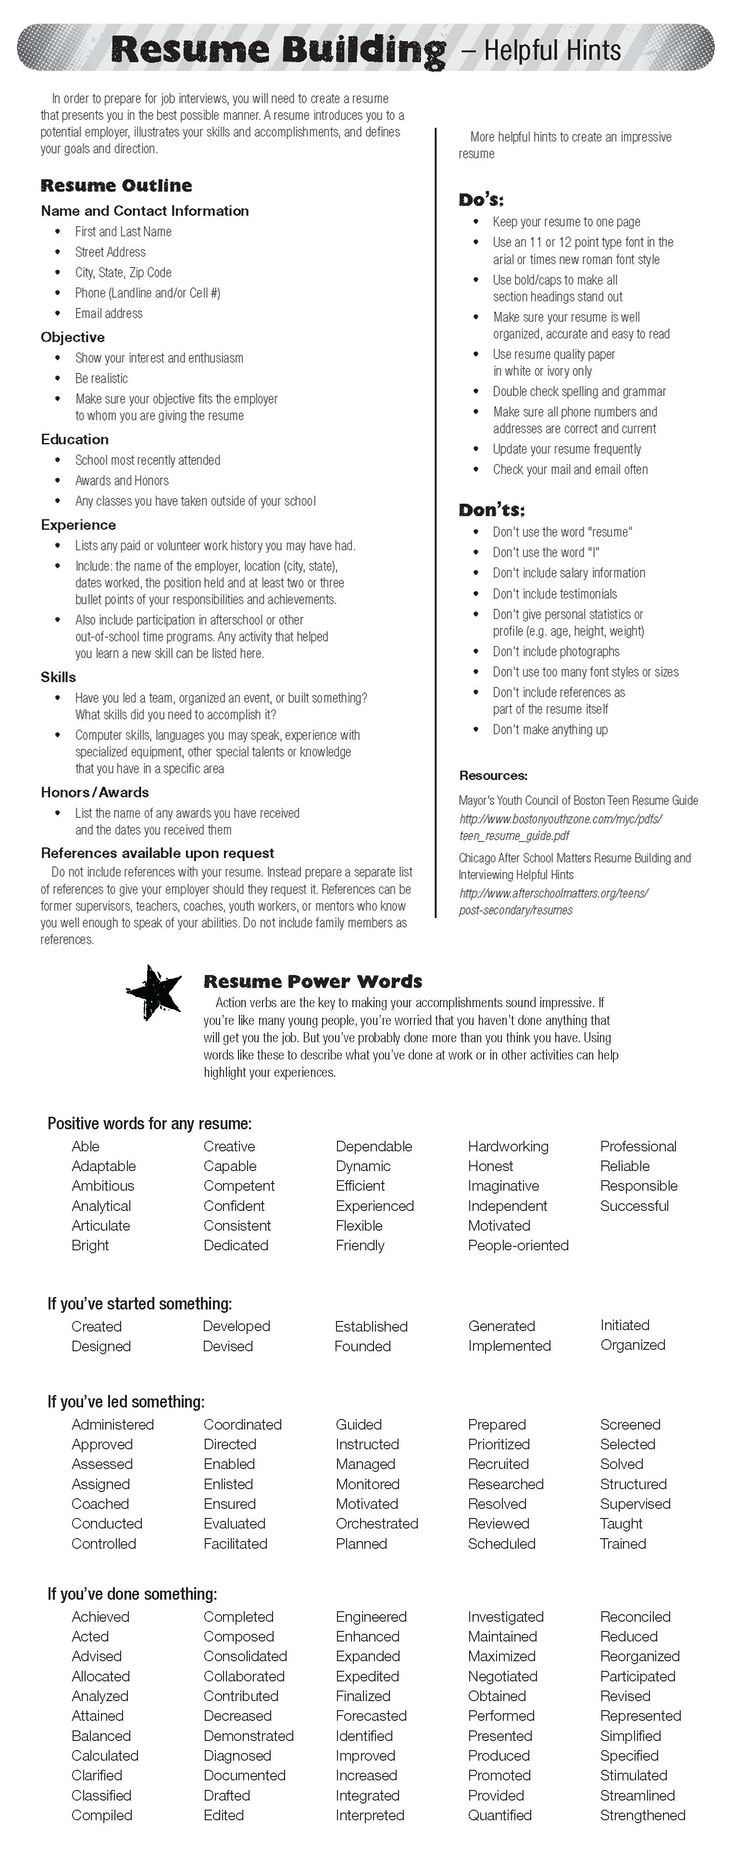 Opposenewapstandardsus  Unusual  Ideas About Resume On Pinterest  Cv Format Resume Cv And  With Interesting  Ideas About Resume On Pinterest  Cv Format Resume Cv And Resume Templates With Delectable Science Resume Also Qa Tester Resume In Addition Best Font To Use For Resume And Free Sample Resumes As Well As Sales Resume Skills Additionally Retail Associate Resume From Pinterestcom With Opposenewapstandardsus  Interesting  Ideas About Resume On Pinterest  Cv Format Resume Cv And  With Delectable  Ideas About Resume On Pinterest  Cv Format Resume Cv And Resume Templates And Unusual Science Resume Also Qa Tester Resume In Addition Best Font To Use For Resume From Pinterestcom